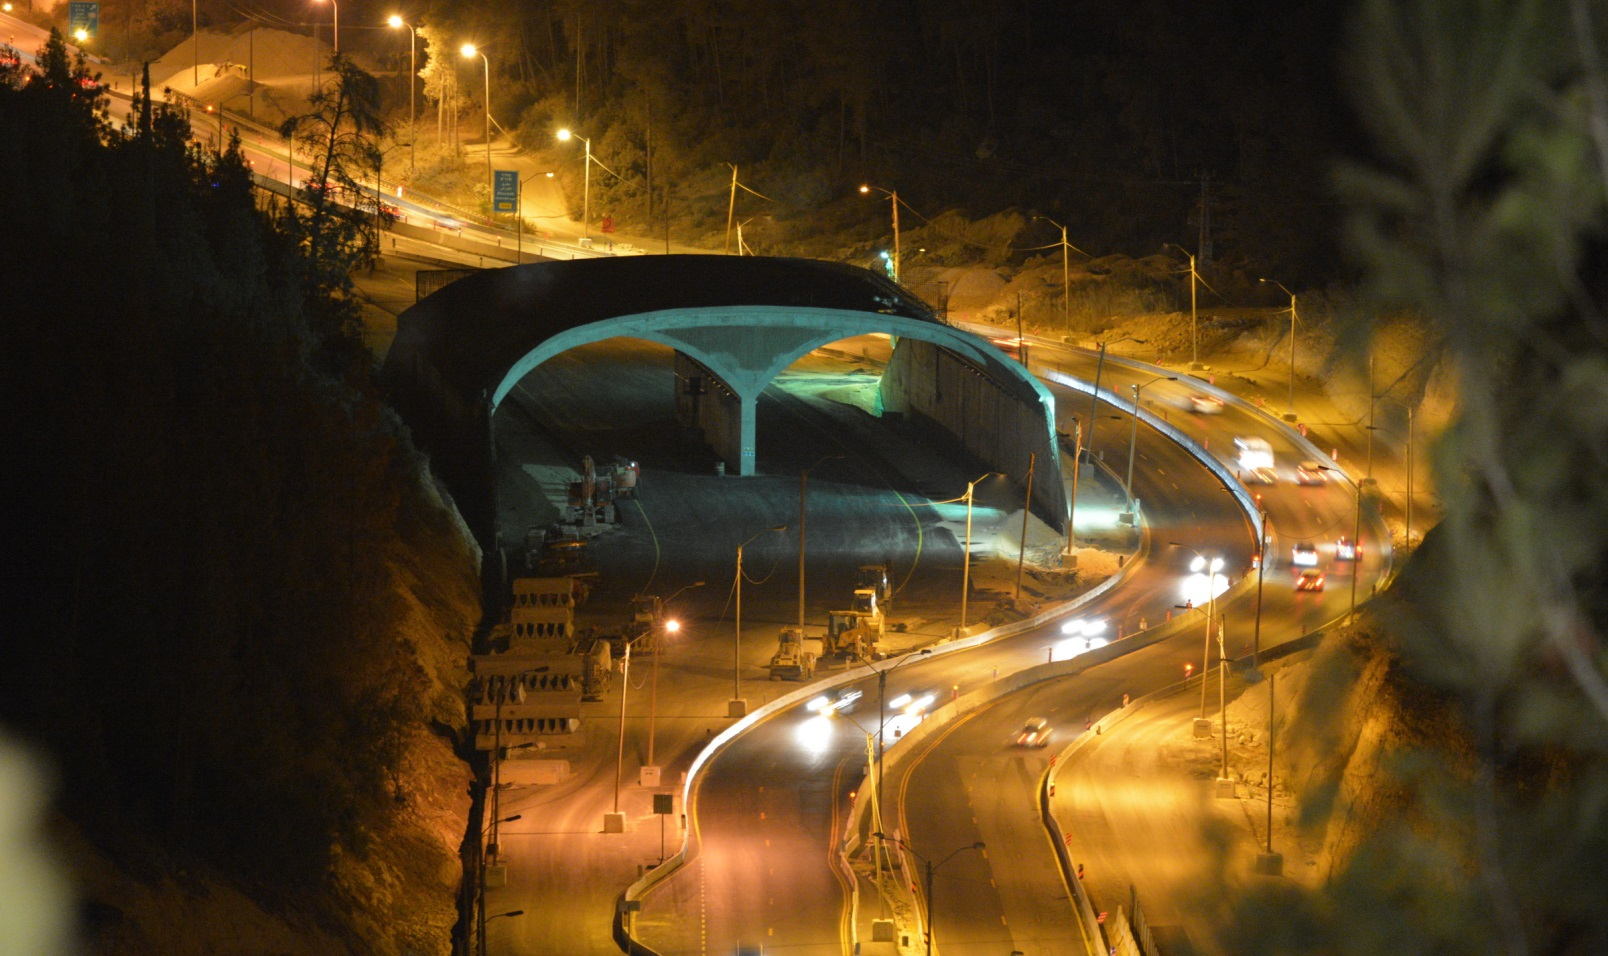 A view of the Highway 1 eco-bridge at night. When the new road is completed, the winding lanes seen to the right will be rerouted under the bridge. Photo courtesy of Netivei Israel